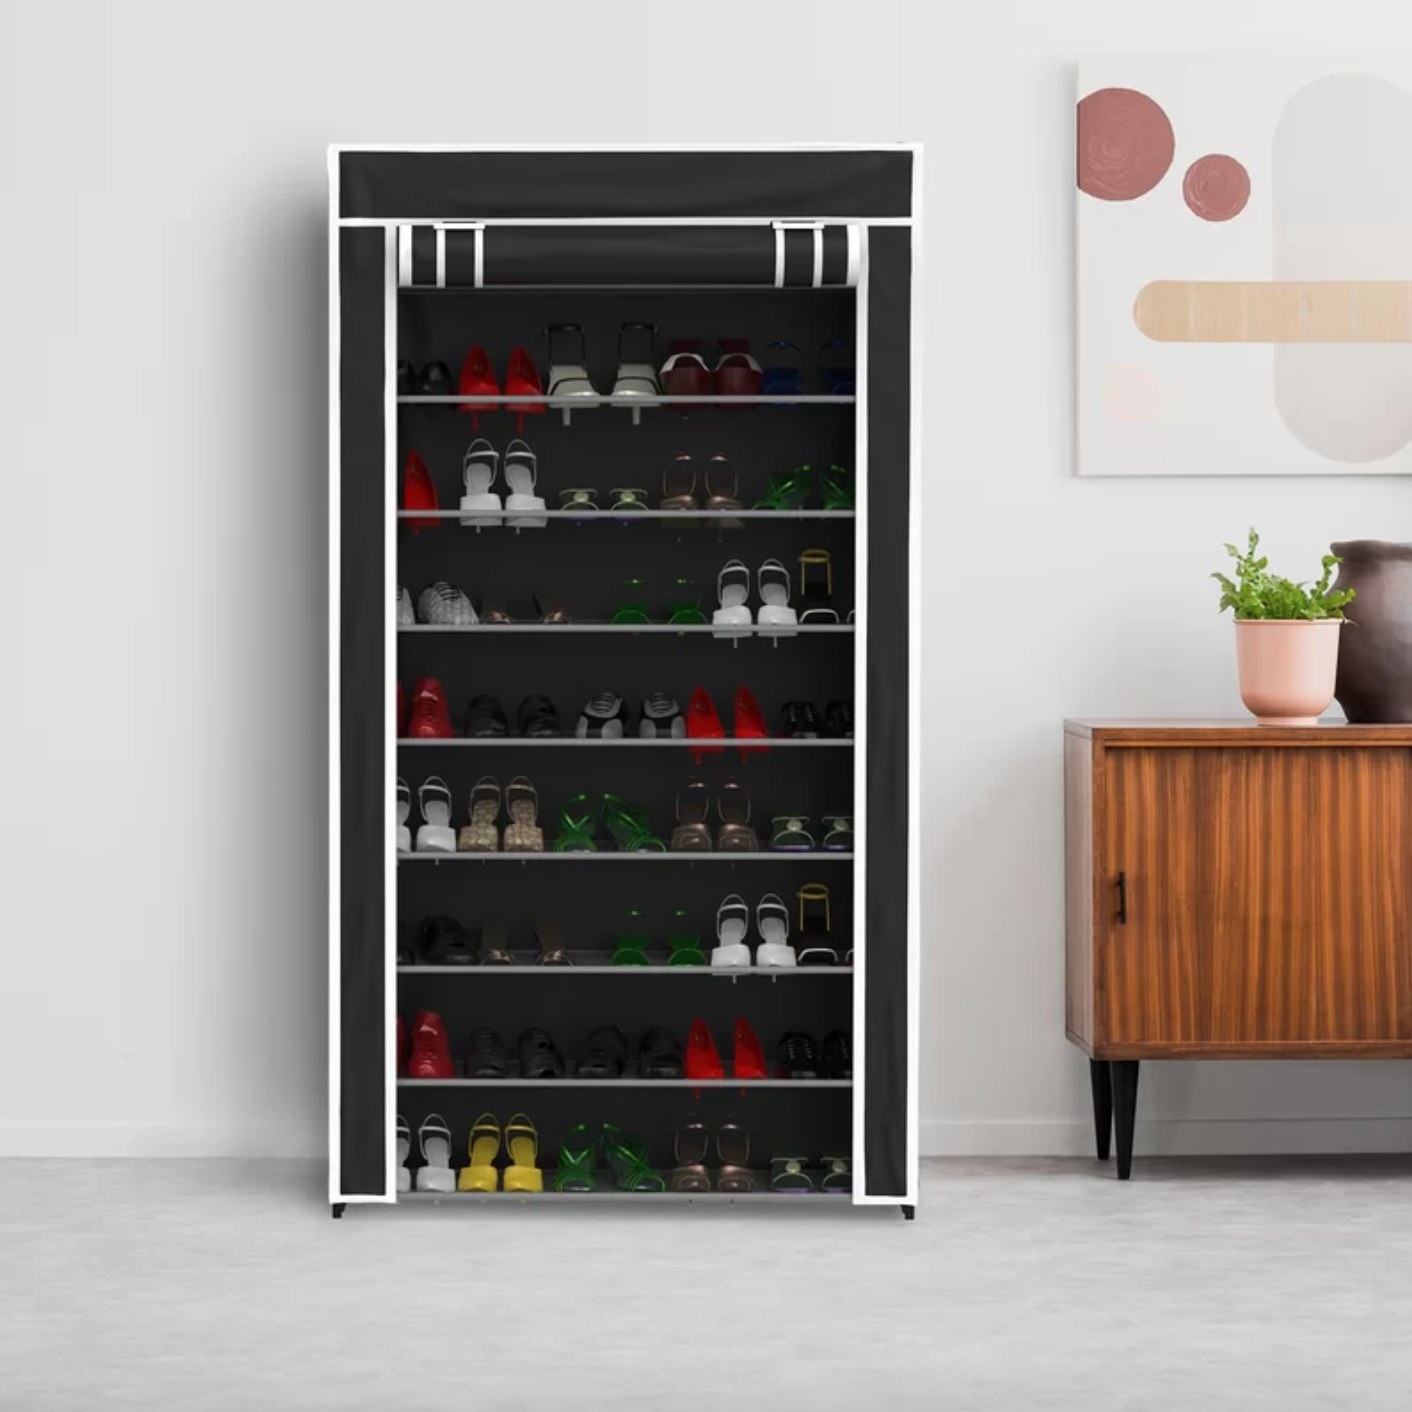 The nine-tier shoe rack in black and white with a curtain